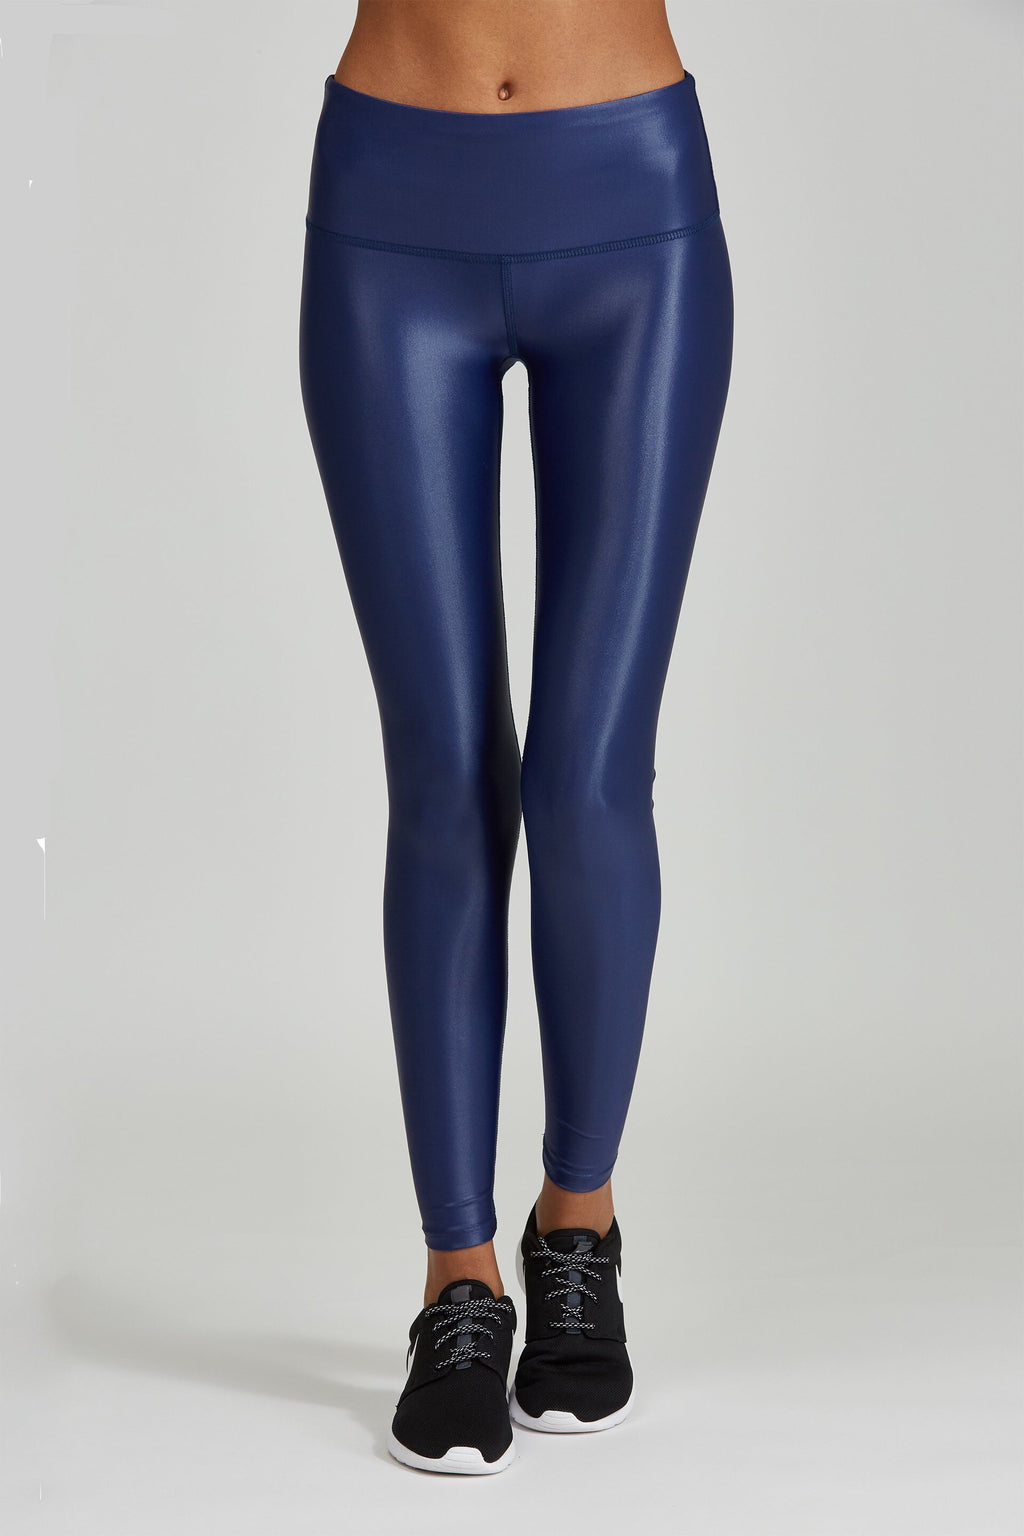 Liquid Legging - Navy